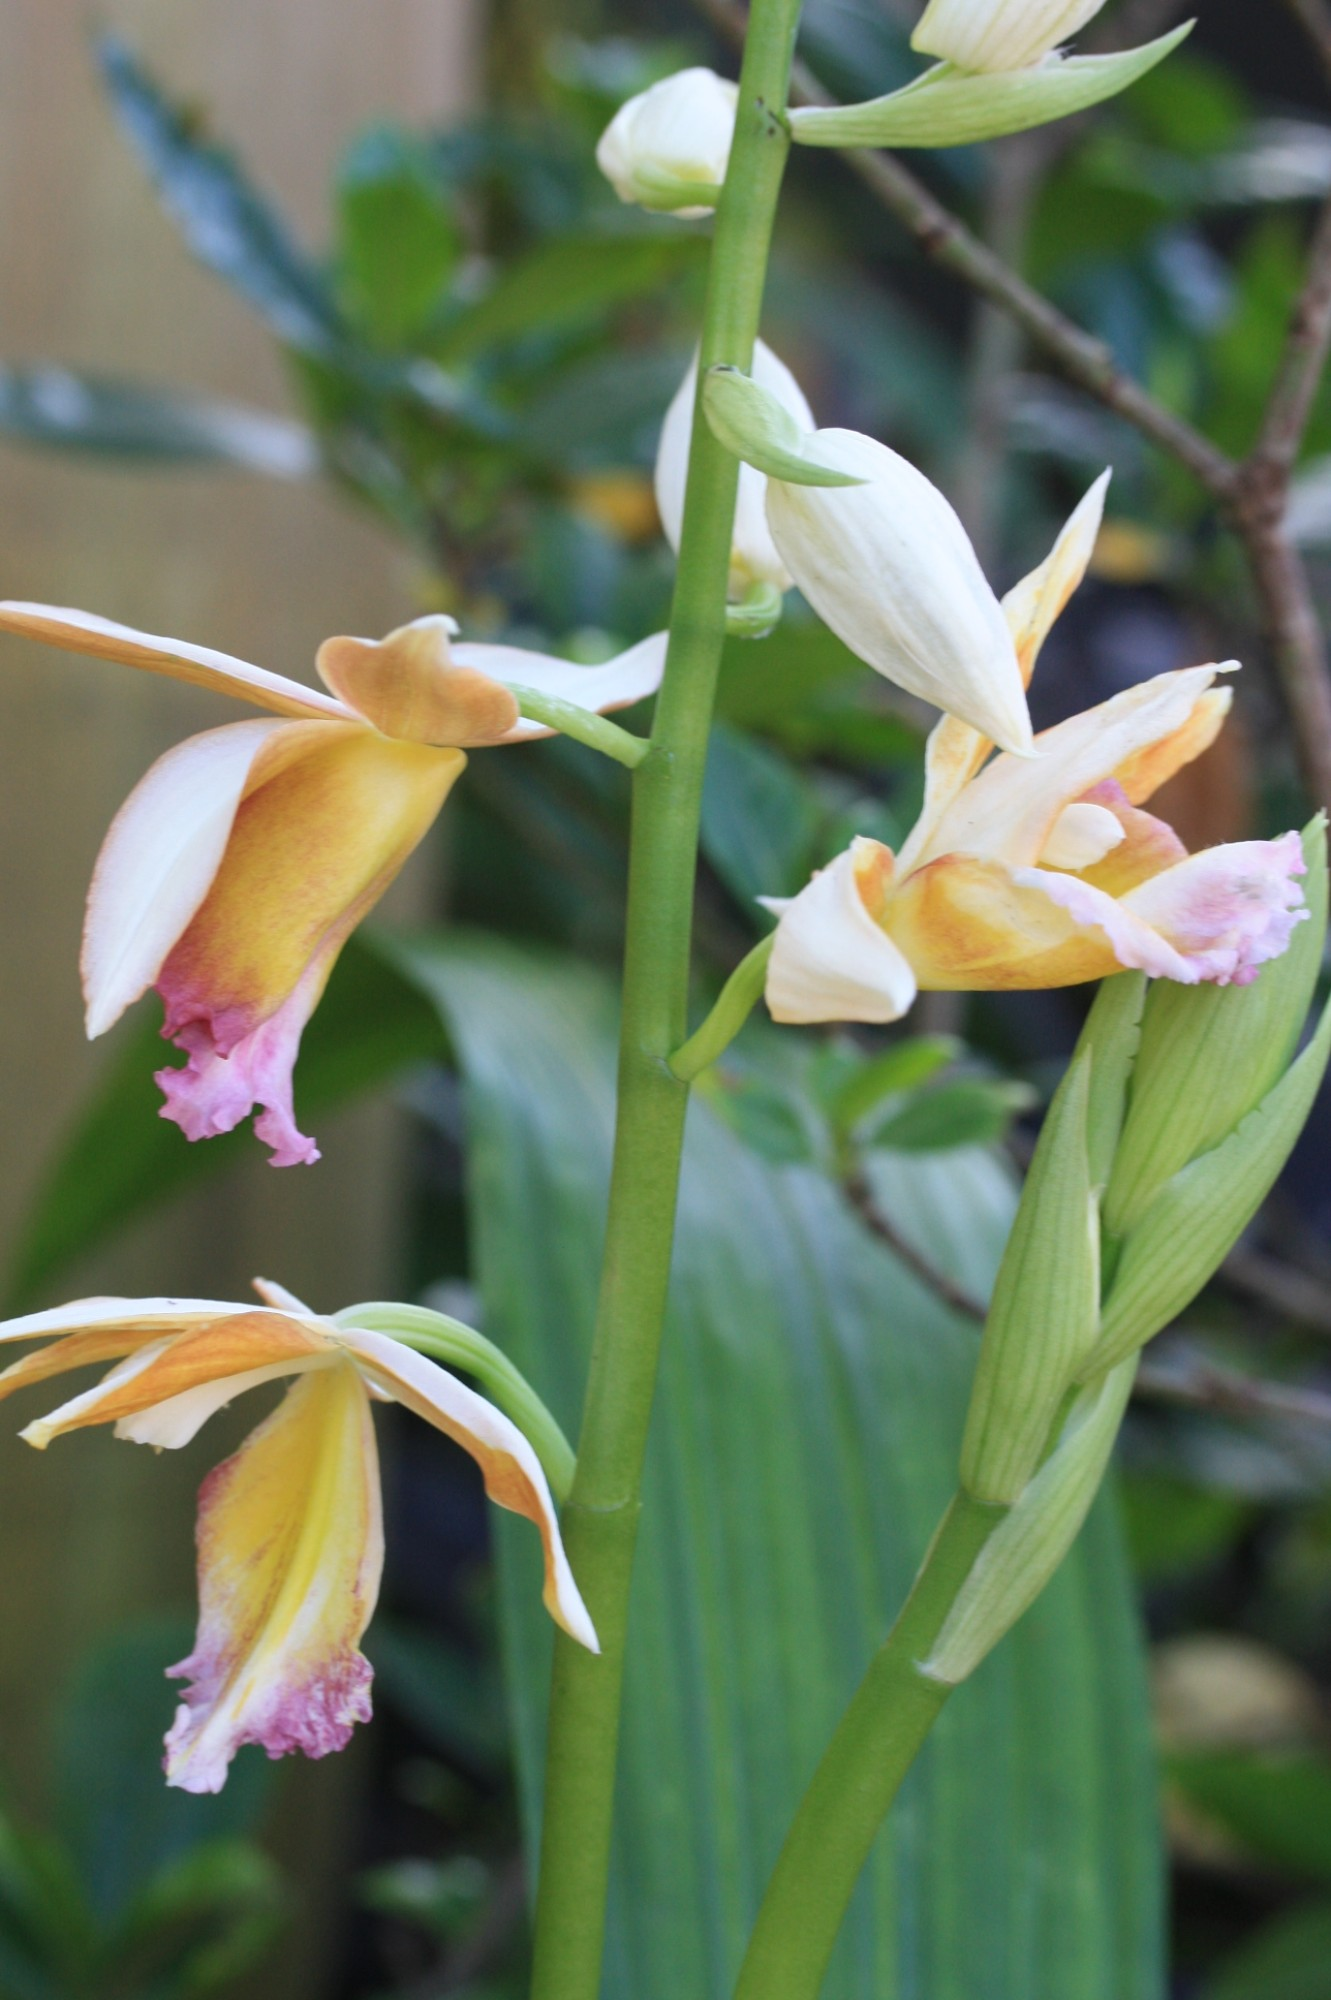 x Gastrophaius Dan Rosenberg 'Tropical Ice', Gardeners Show House. Photo by Leslie Hunter.